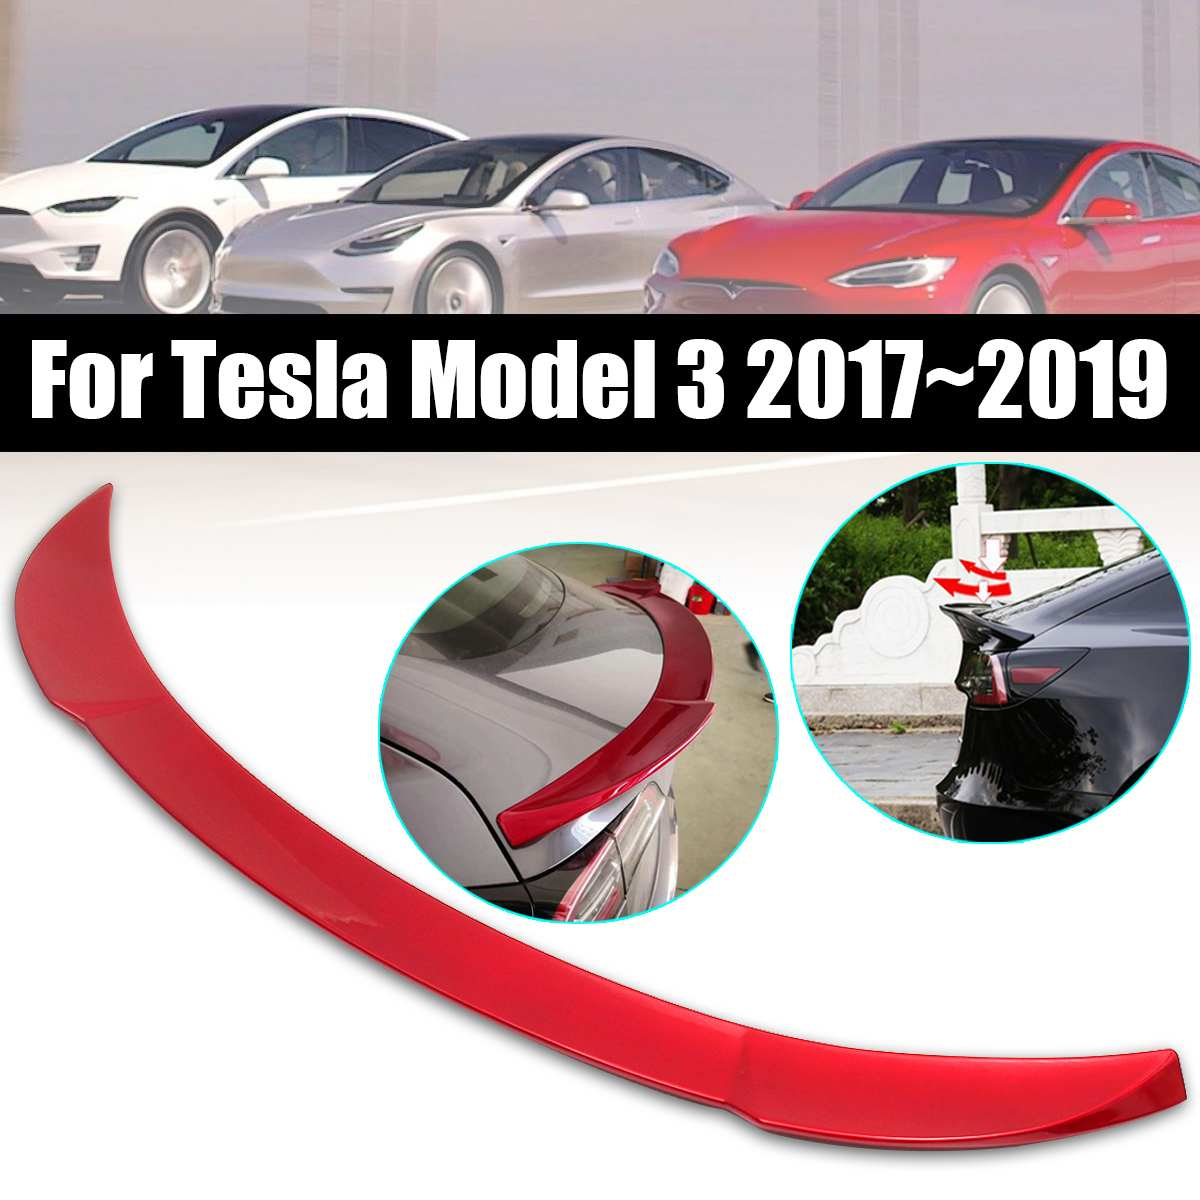 ABS Gloss Red Rear Spoiler Wing for Tesla for Model 3 2017 2018 2019 Exterior Parts Car Rear SpoilerABS Gloss Red Rear Spoiler Wing for Tesla for Model 3 2017 2018 2019 Exterior Parts Car Rear Spoiler